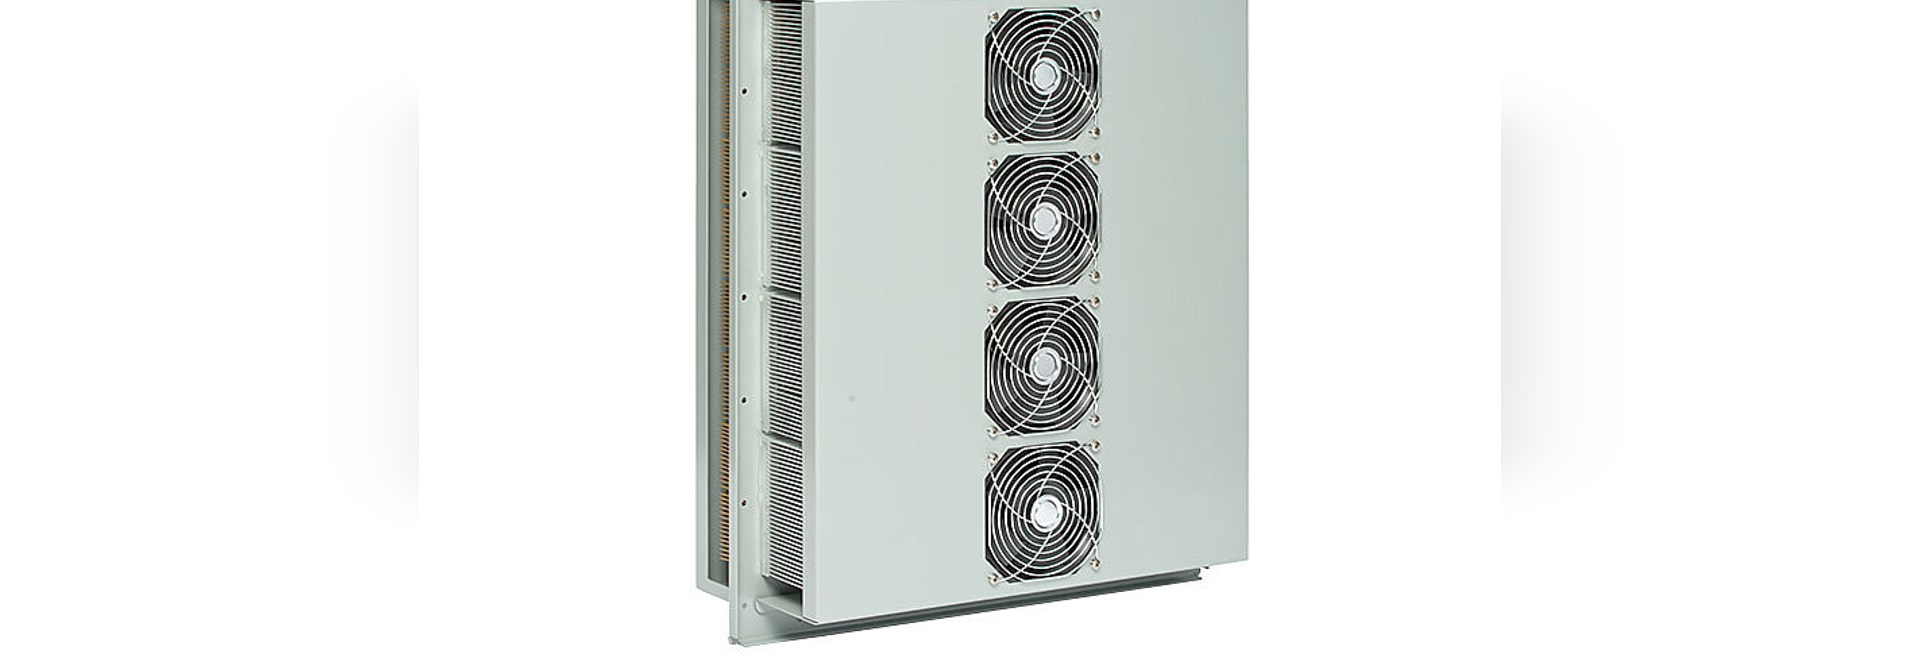 EIC Solutions Now offering CE-Certified ThermoTEC 151-series